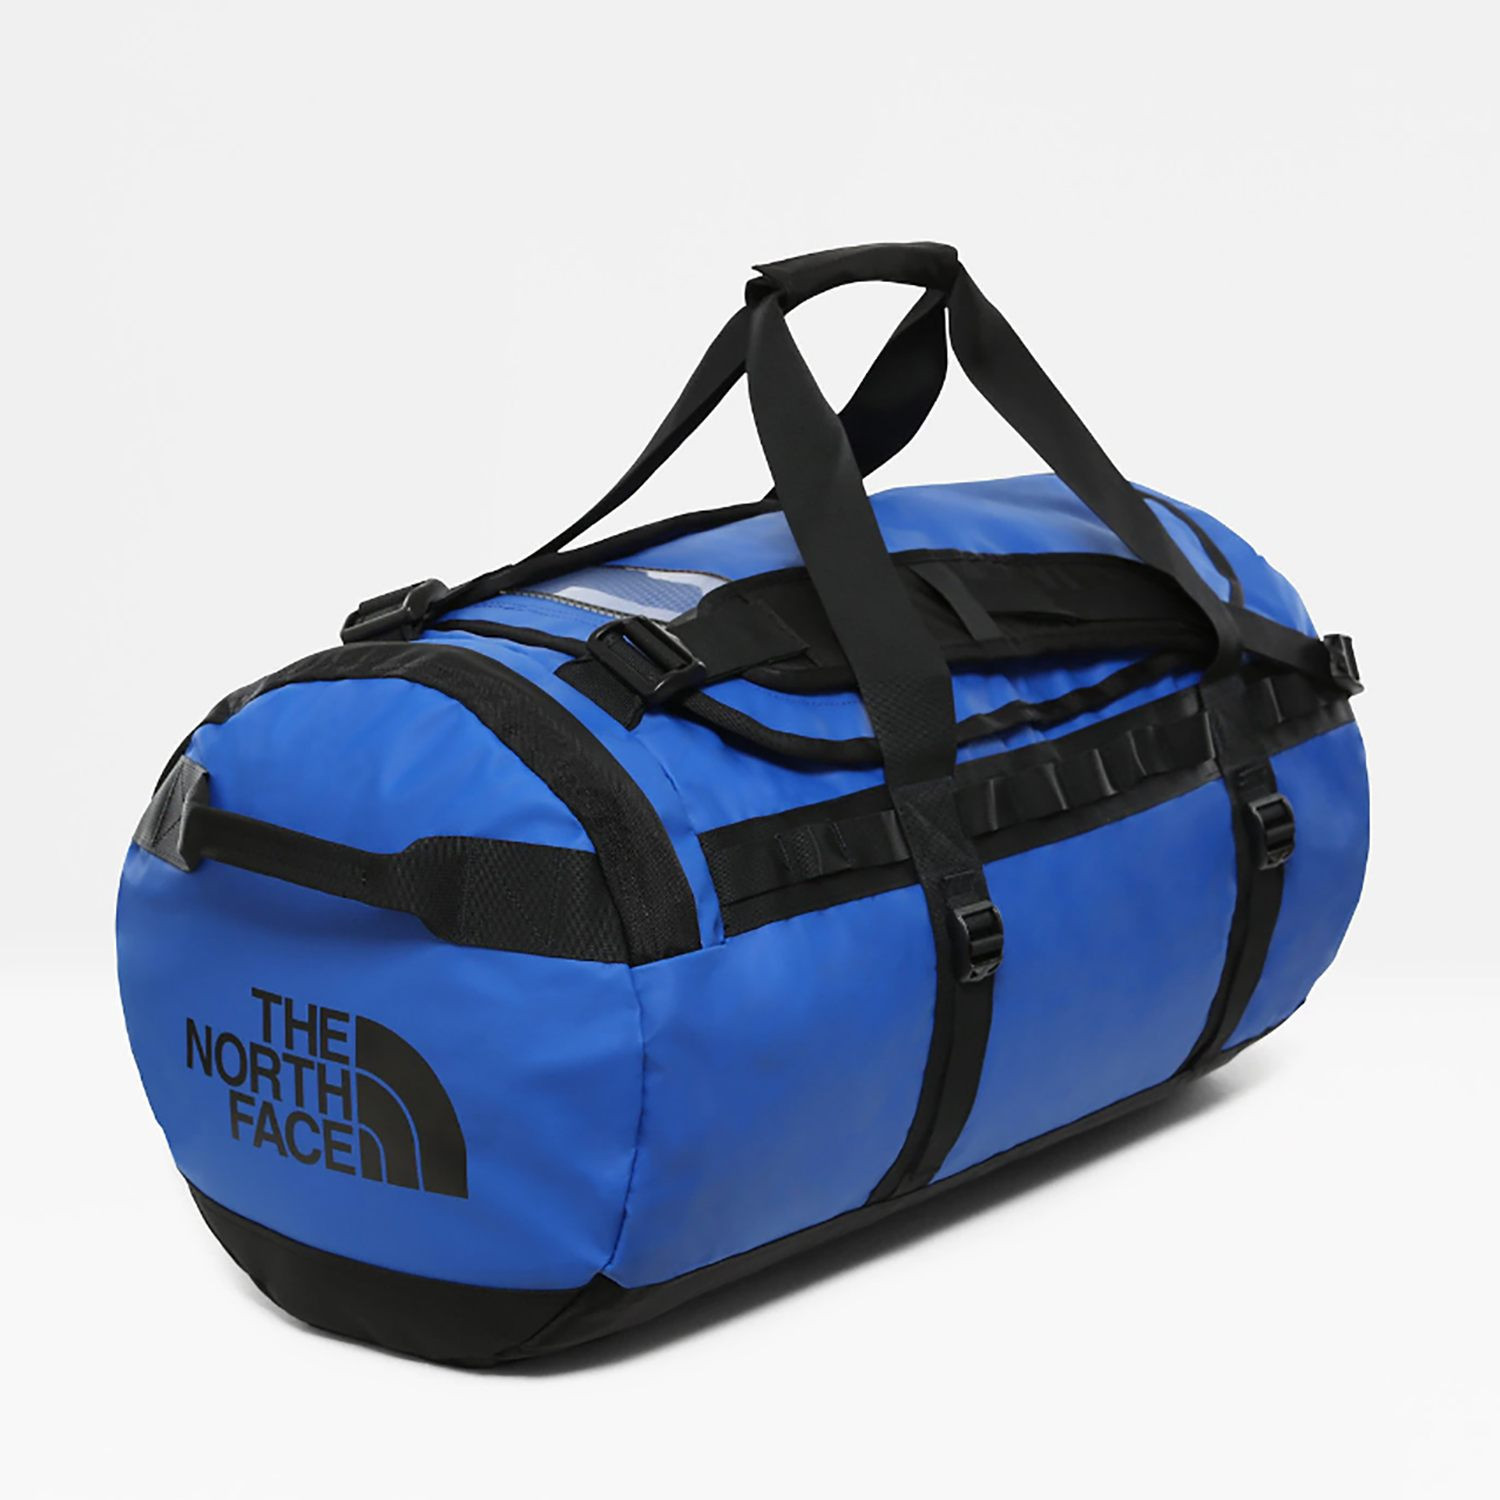 THE NORTH FACE BASE CAMP DUFFEL - M (9000036620_41113)